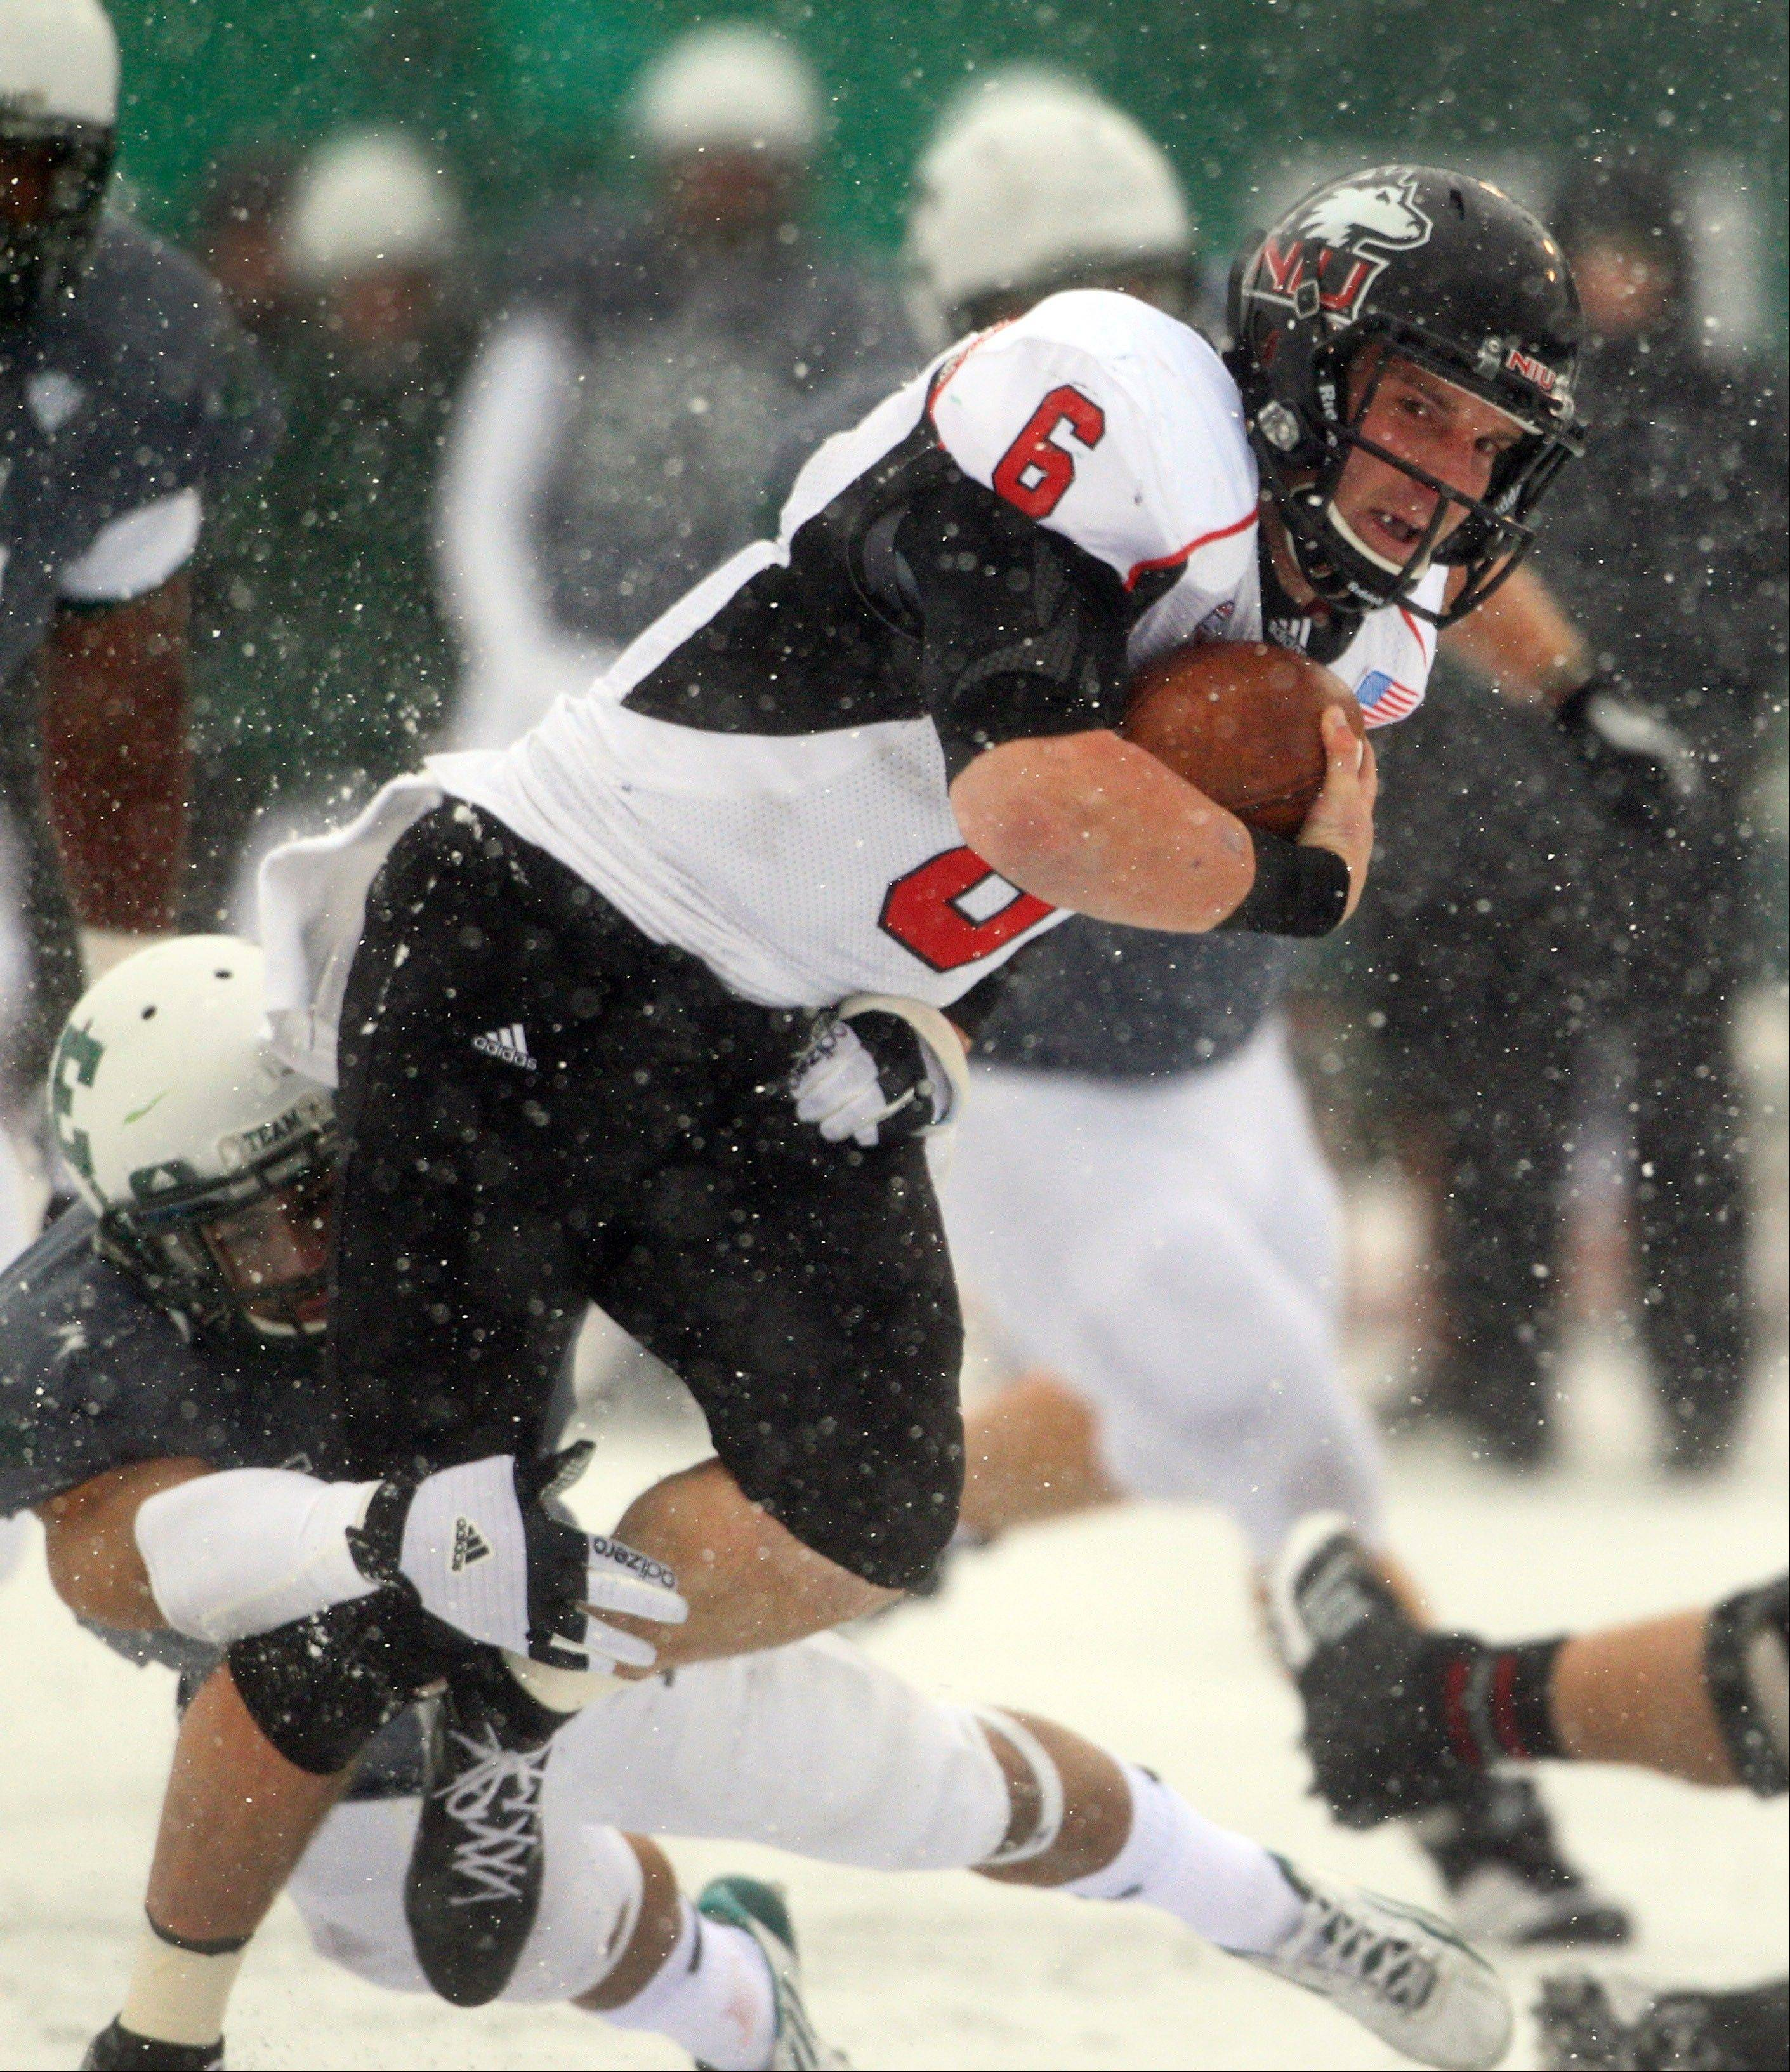 Northern Illinois Huskies quarterback Jordan Lynch is stopped on a run by Eastern Michigan Friday during the second quarter in Ypsilanti, Mich. The Huskies beat Eastern Michigan 49-7.